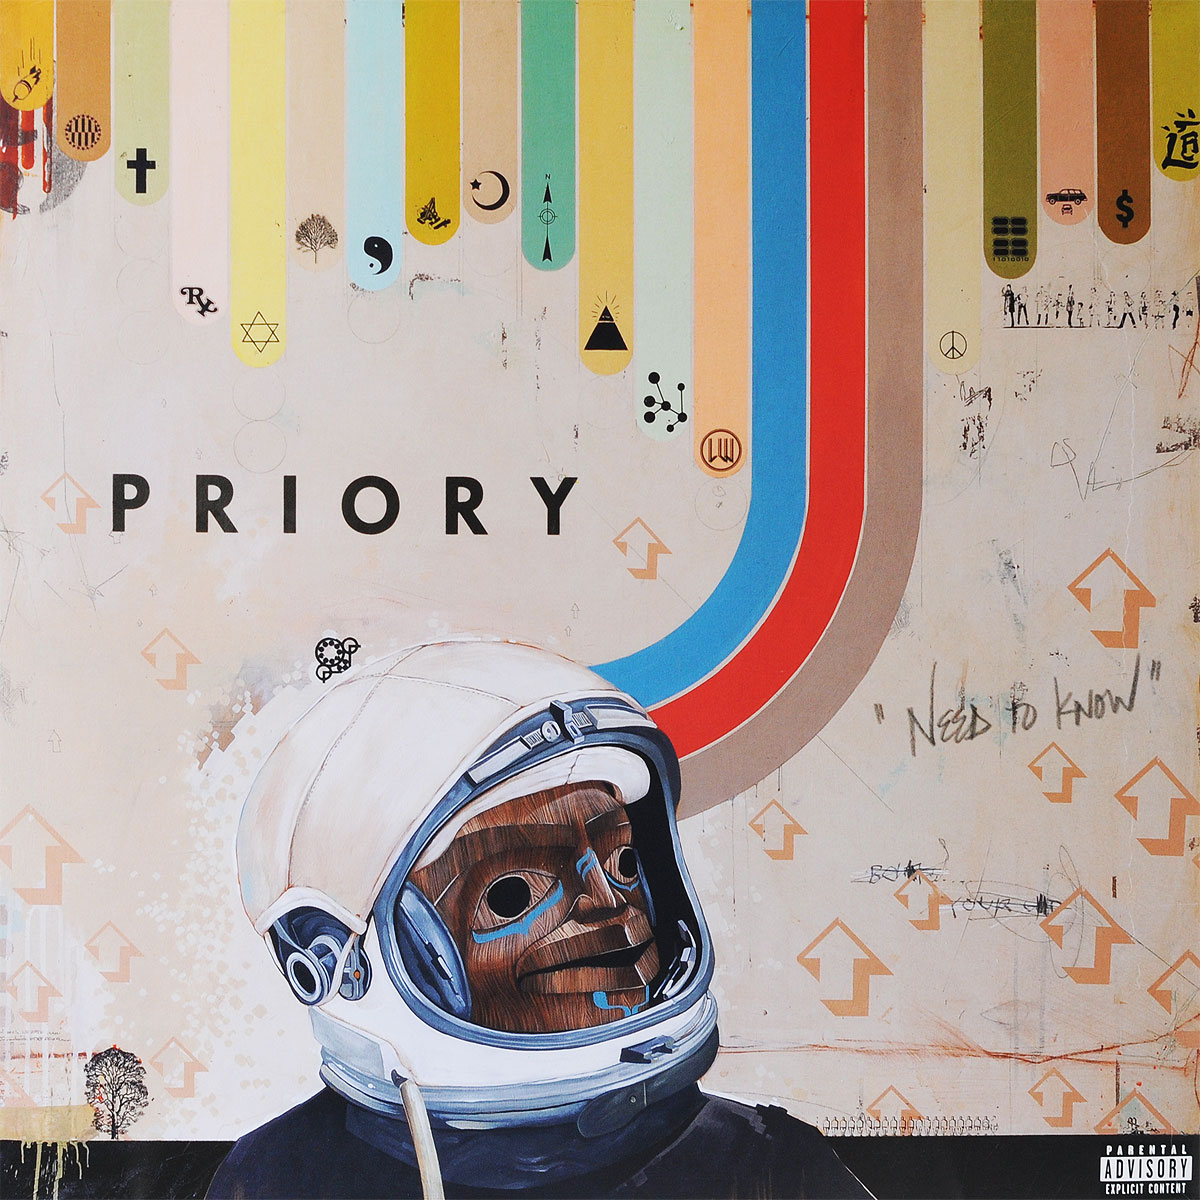 Priory. Need To Know (LP)